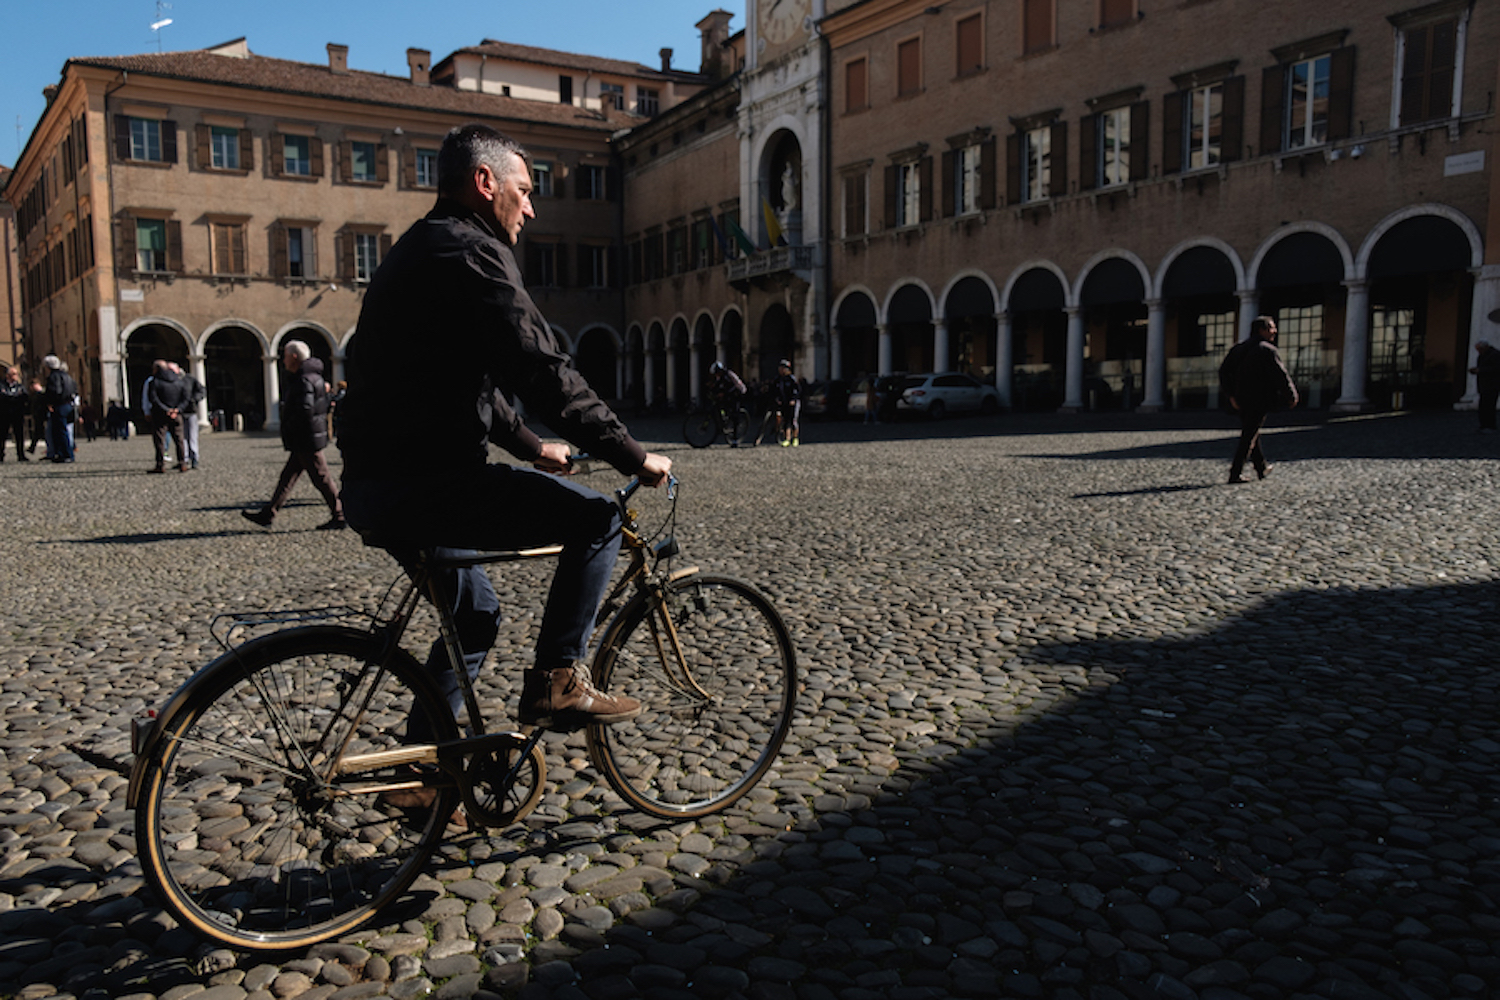 Modena, Itay Street and Travel Photography by Ben Holbrook from DriftwoodJournals.com-4990